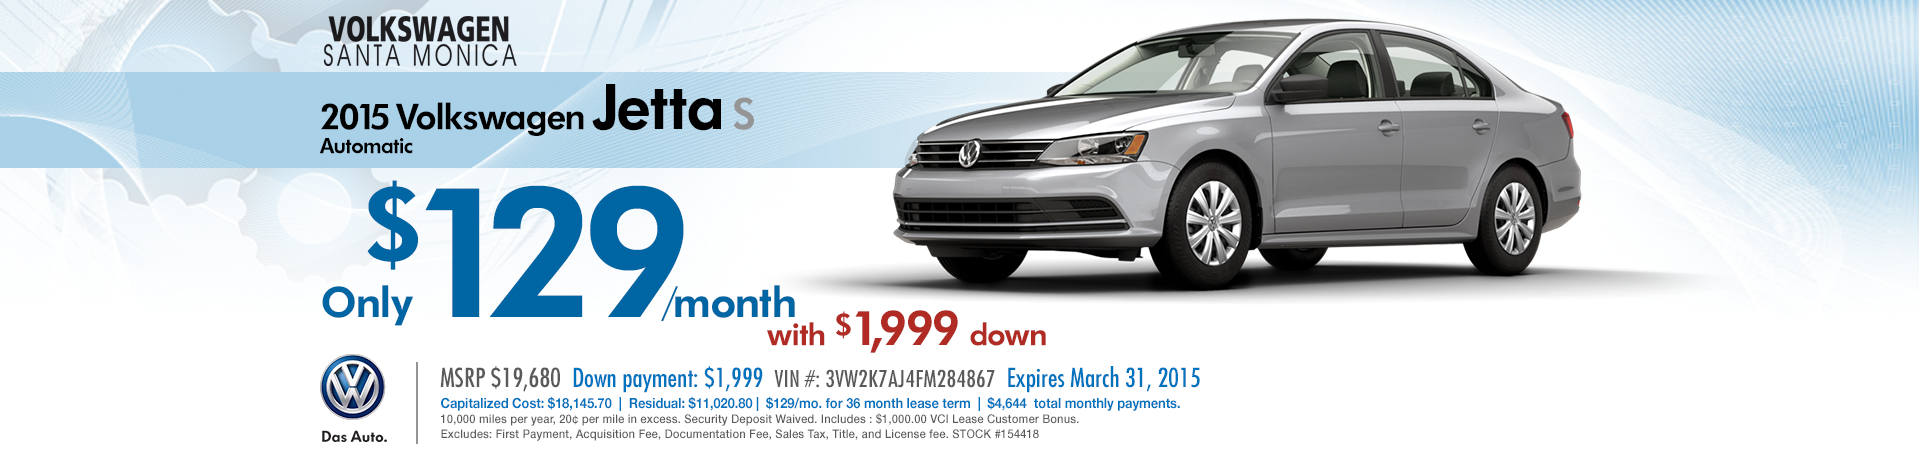 New 2015 VW Jetta S Low Payment Lease Special at Volkswagen Santa Monica serving the Los Angeles Area